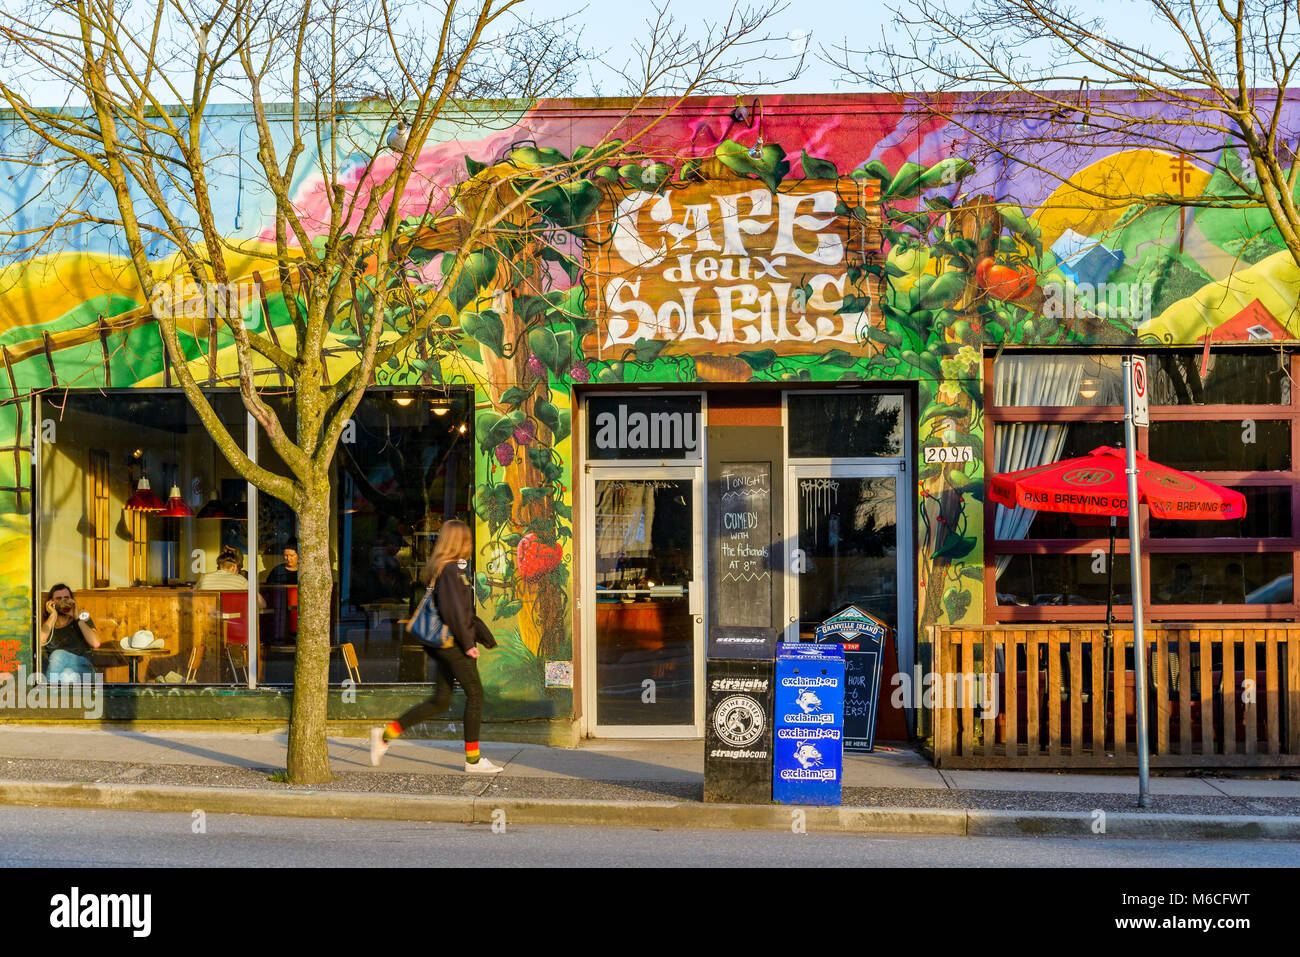 Cafe deux Soleils, Commercial Drive, Vancouver, British Columbia, Canada Stock Photo